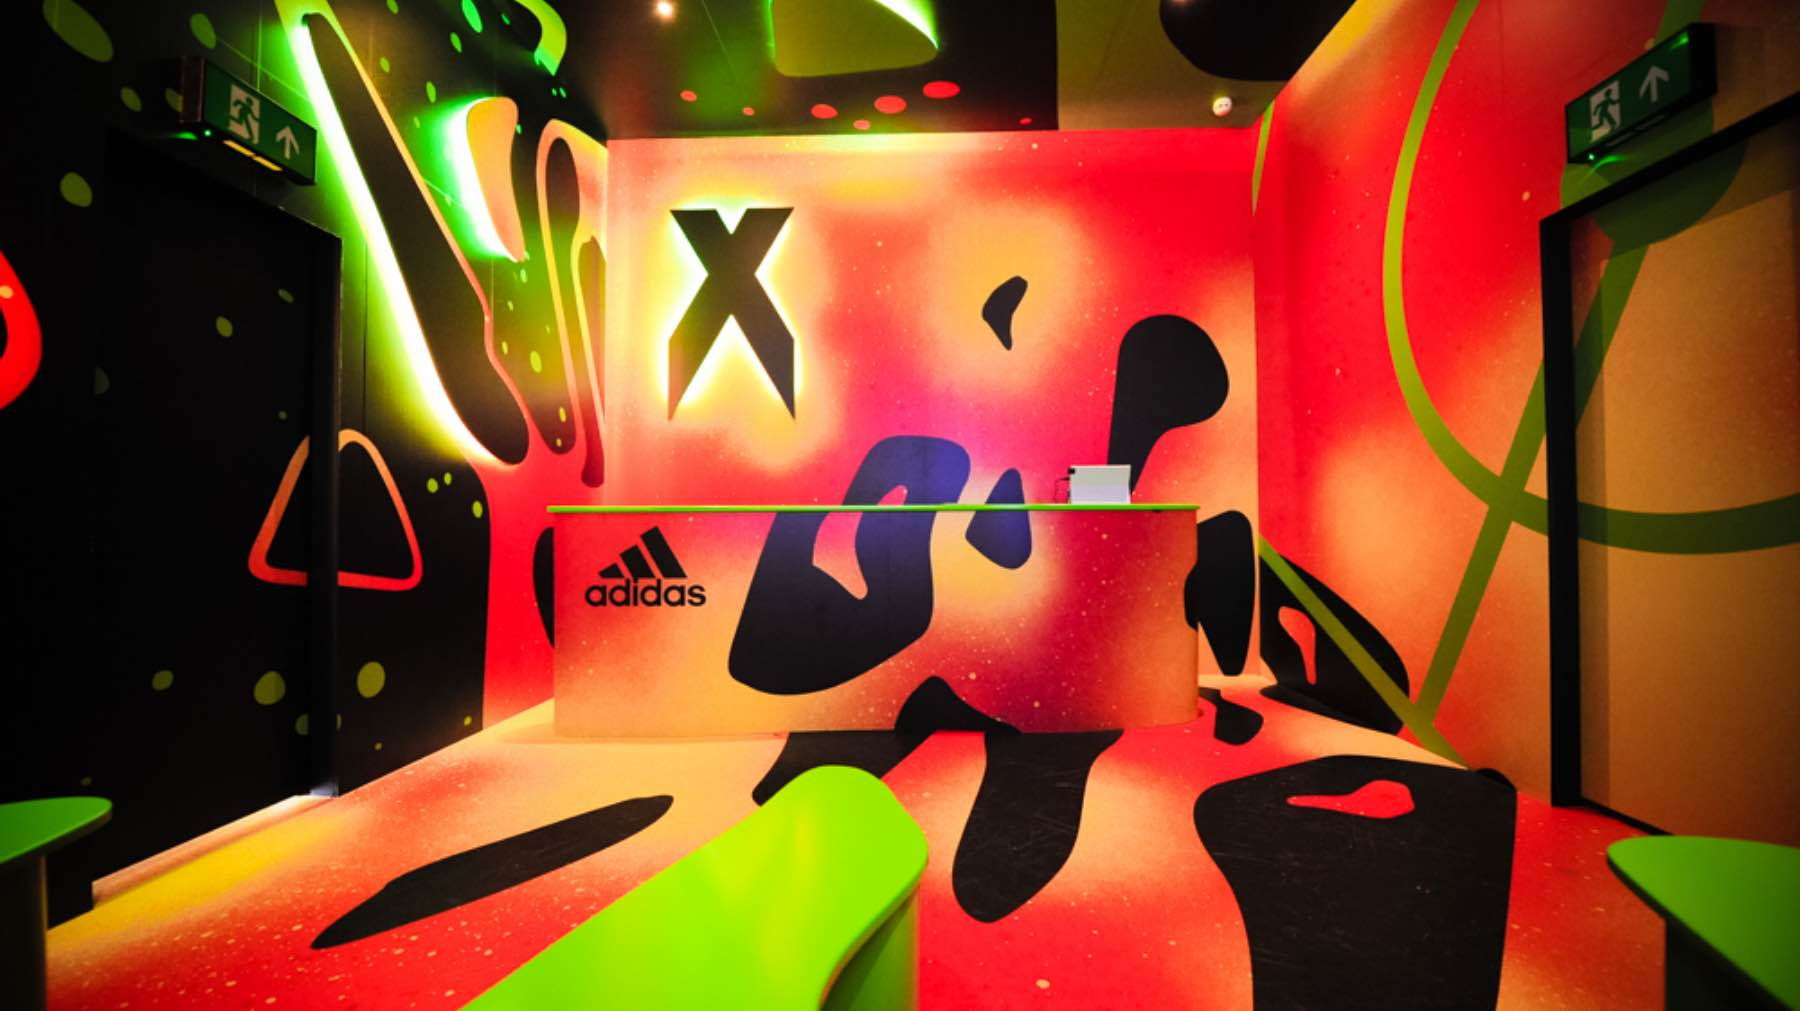 lucid-adidas-base-orange-room@2x